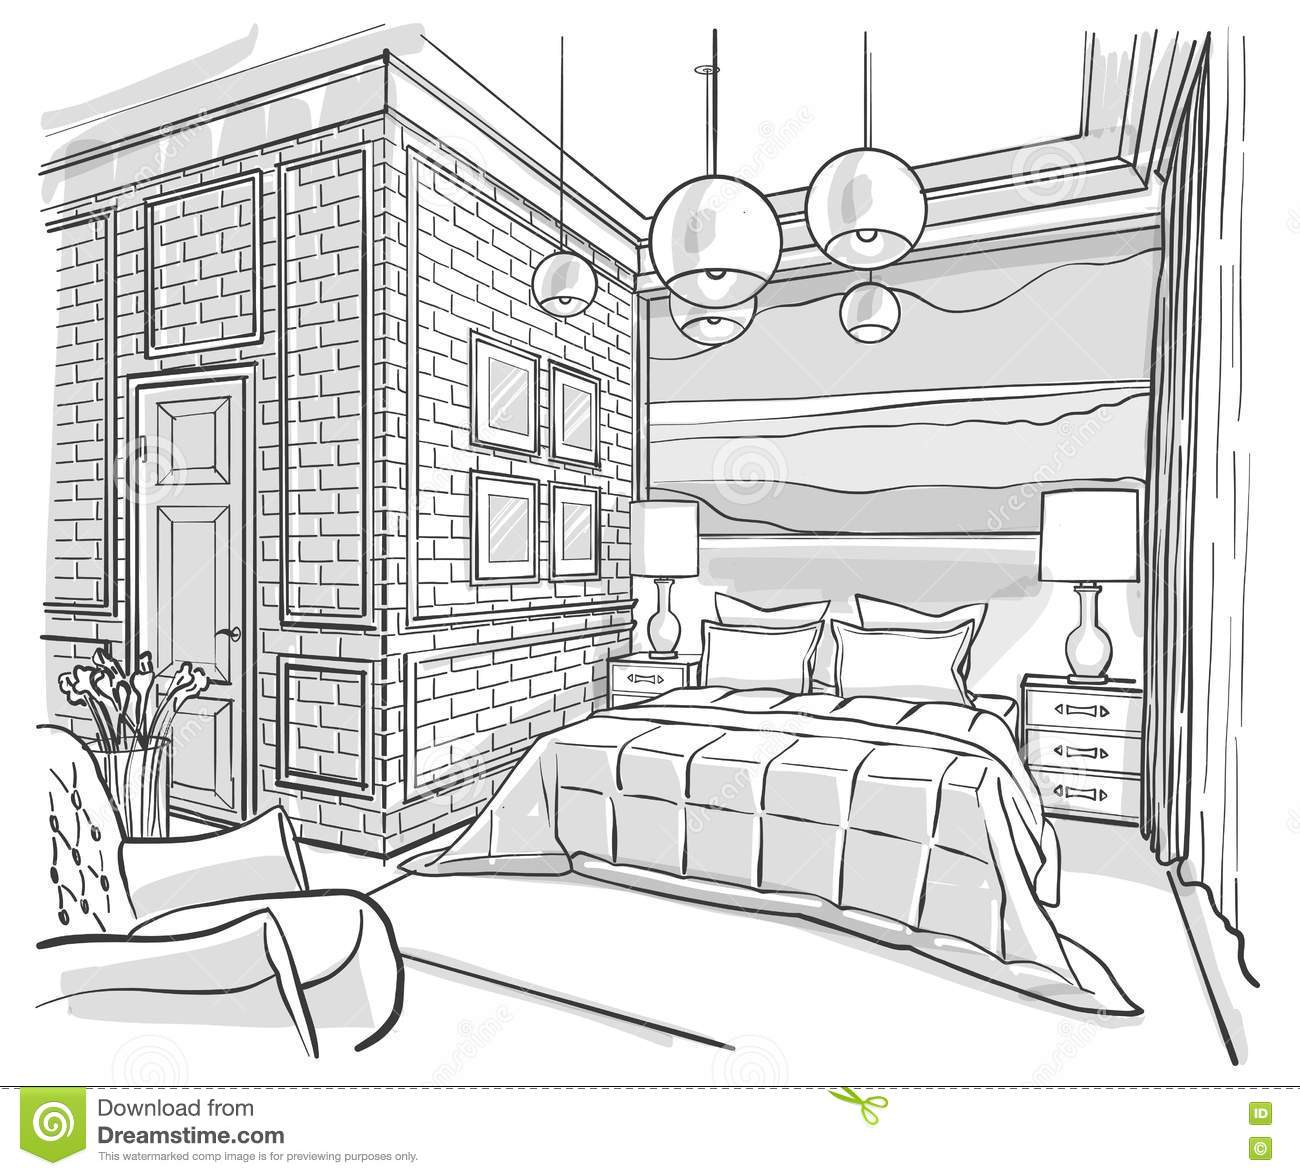 Kommode Gezeichnet Bedroom Interior Outline Vector Sketch Drawing Stock